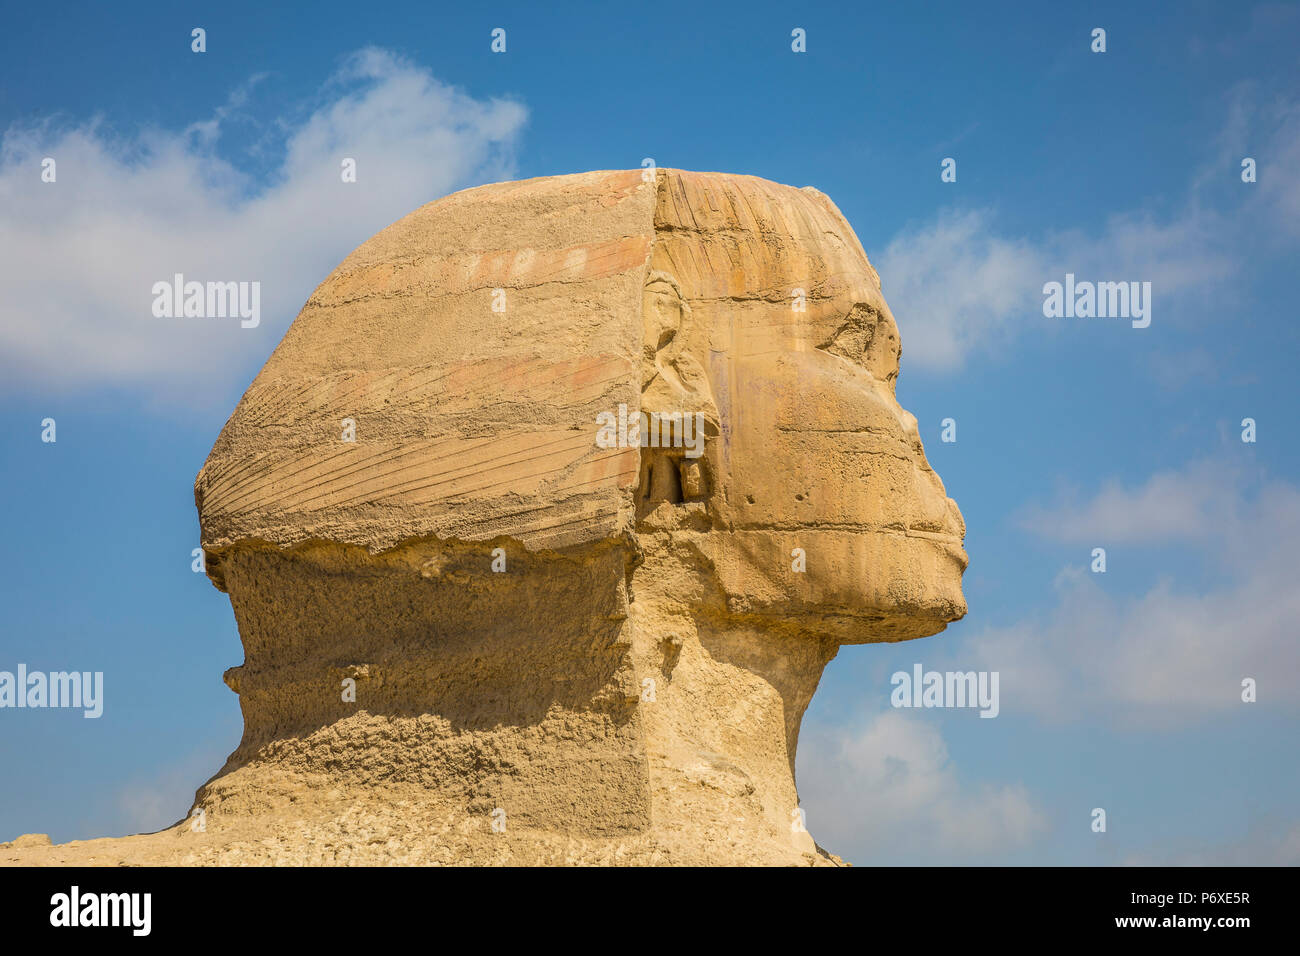 Sphinx, pyramides de Gizeh, Giza, Le Caire, Egypte Photo Stock